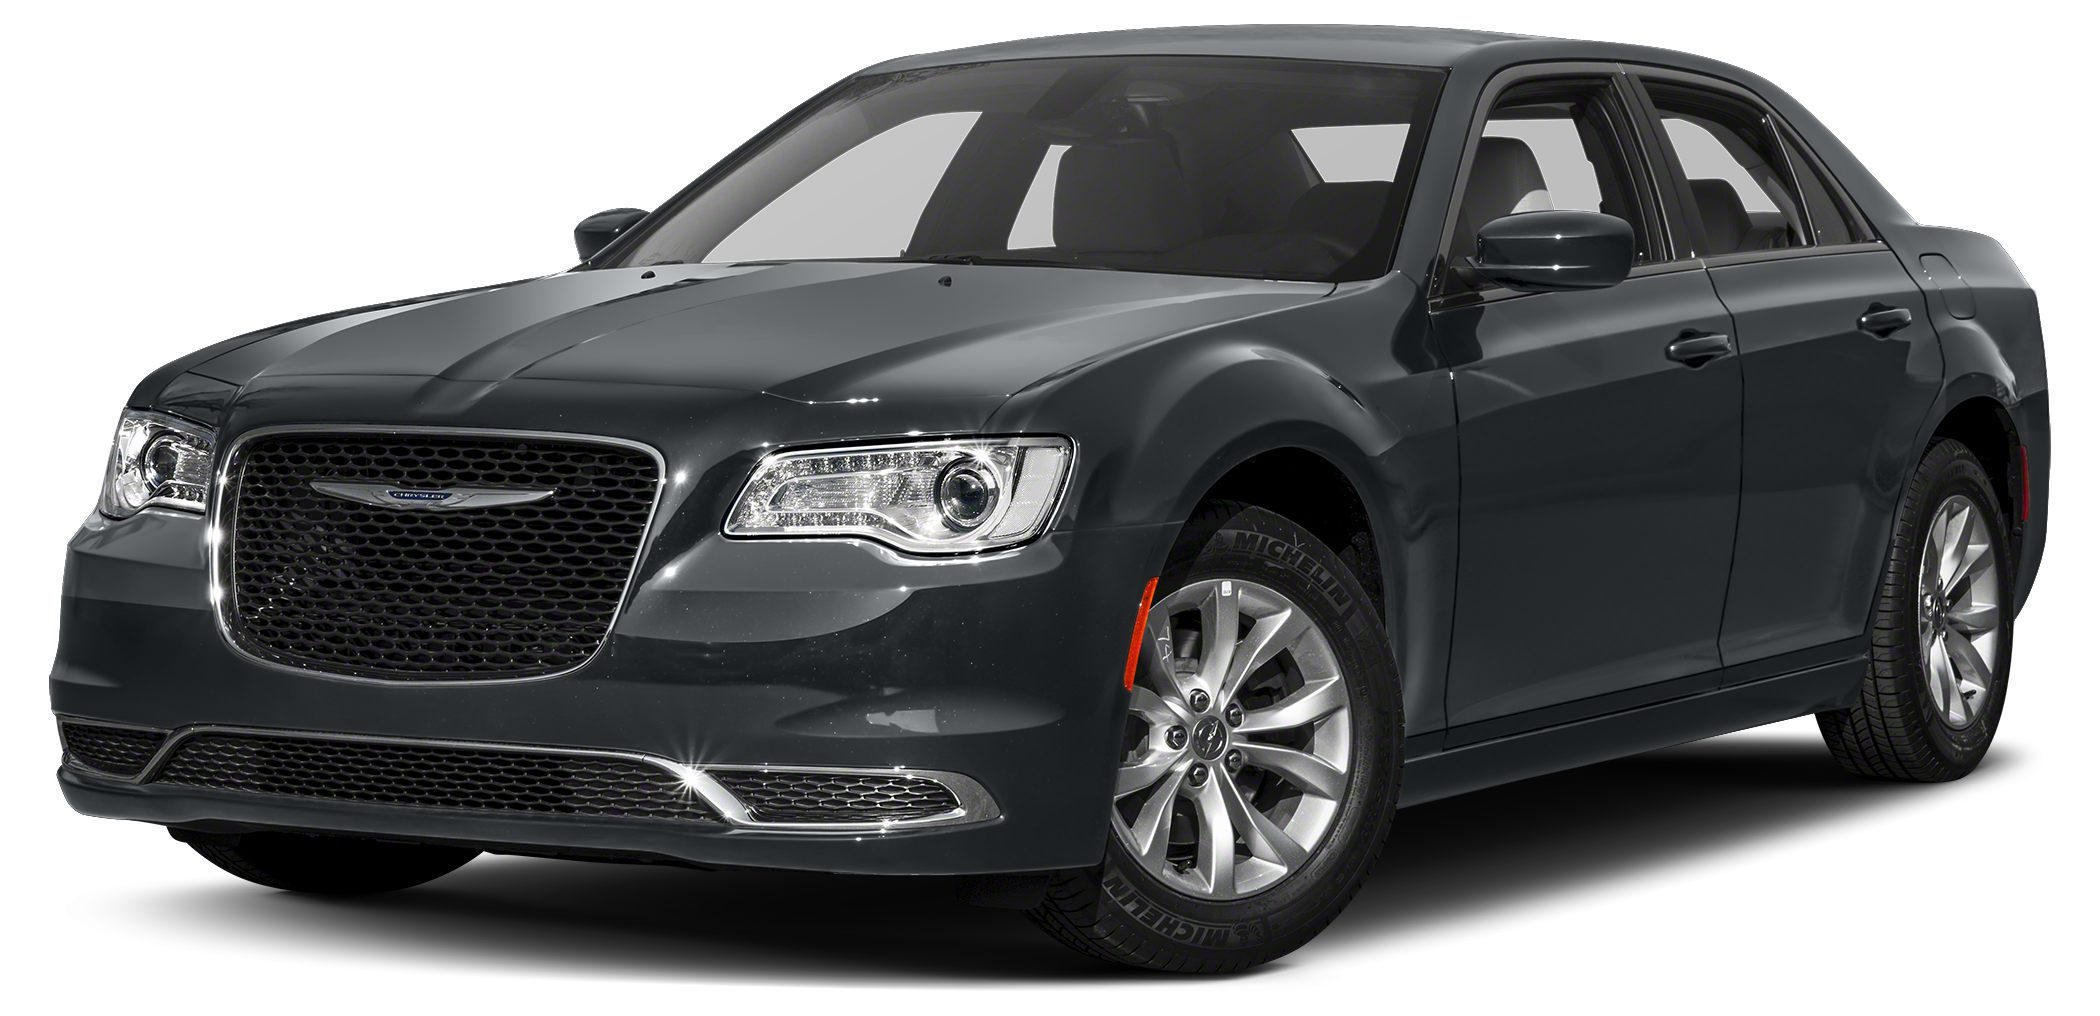 2015 Chrysler 300 S Happiness comes first with this 2015 Chrysler 300 S Enjoy first-rate features